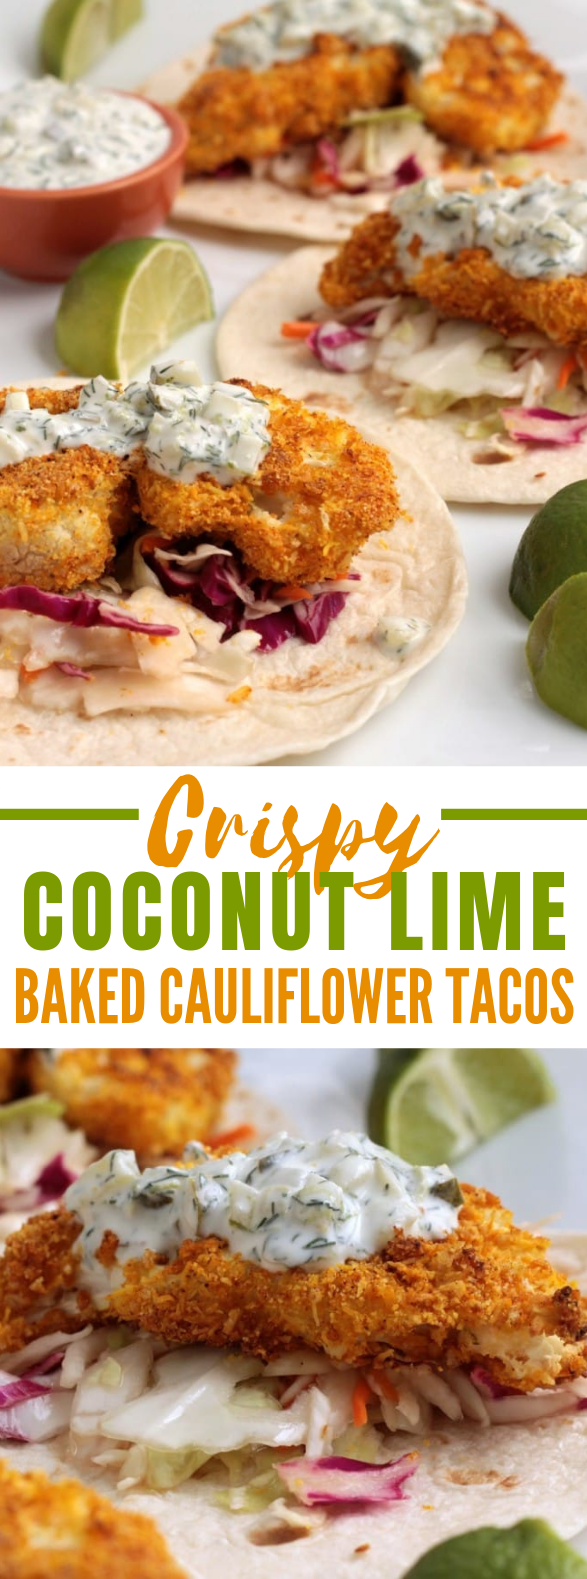 CRISPY COCONUT LIME BAKED CAULIFLOWER TACOS #vegetarian #oilfree